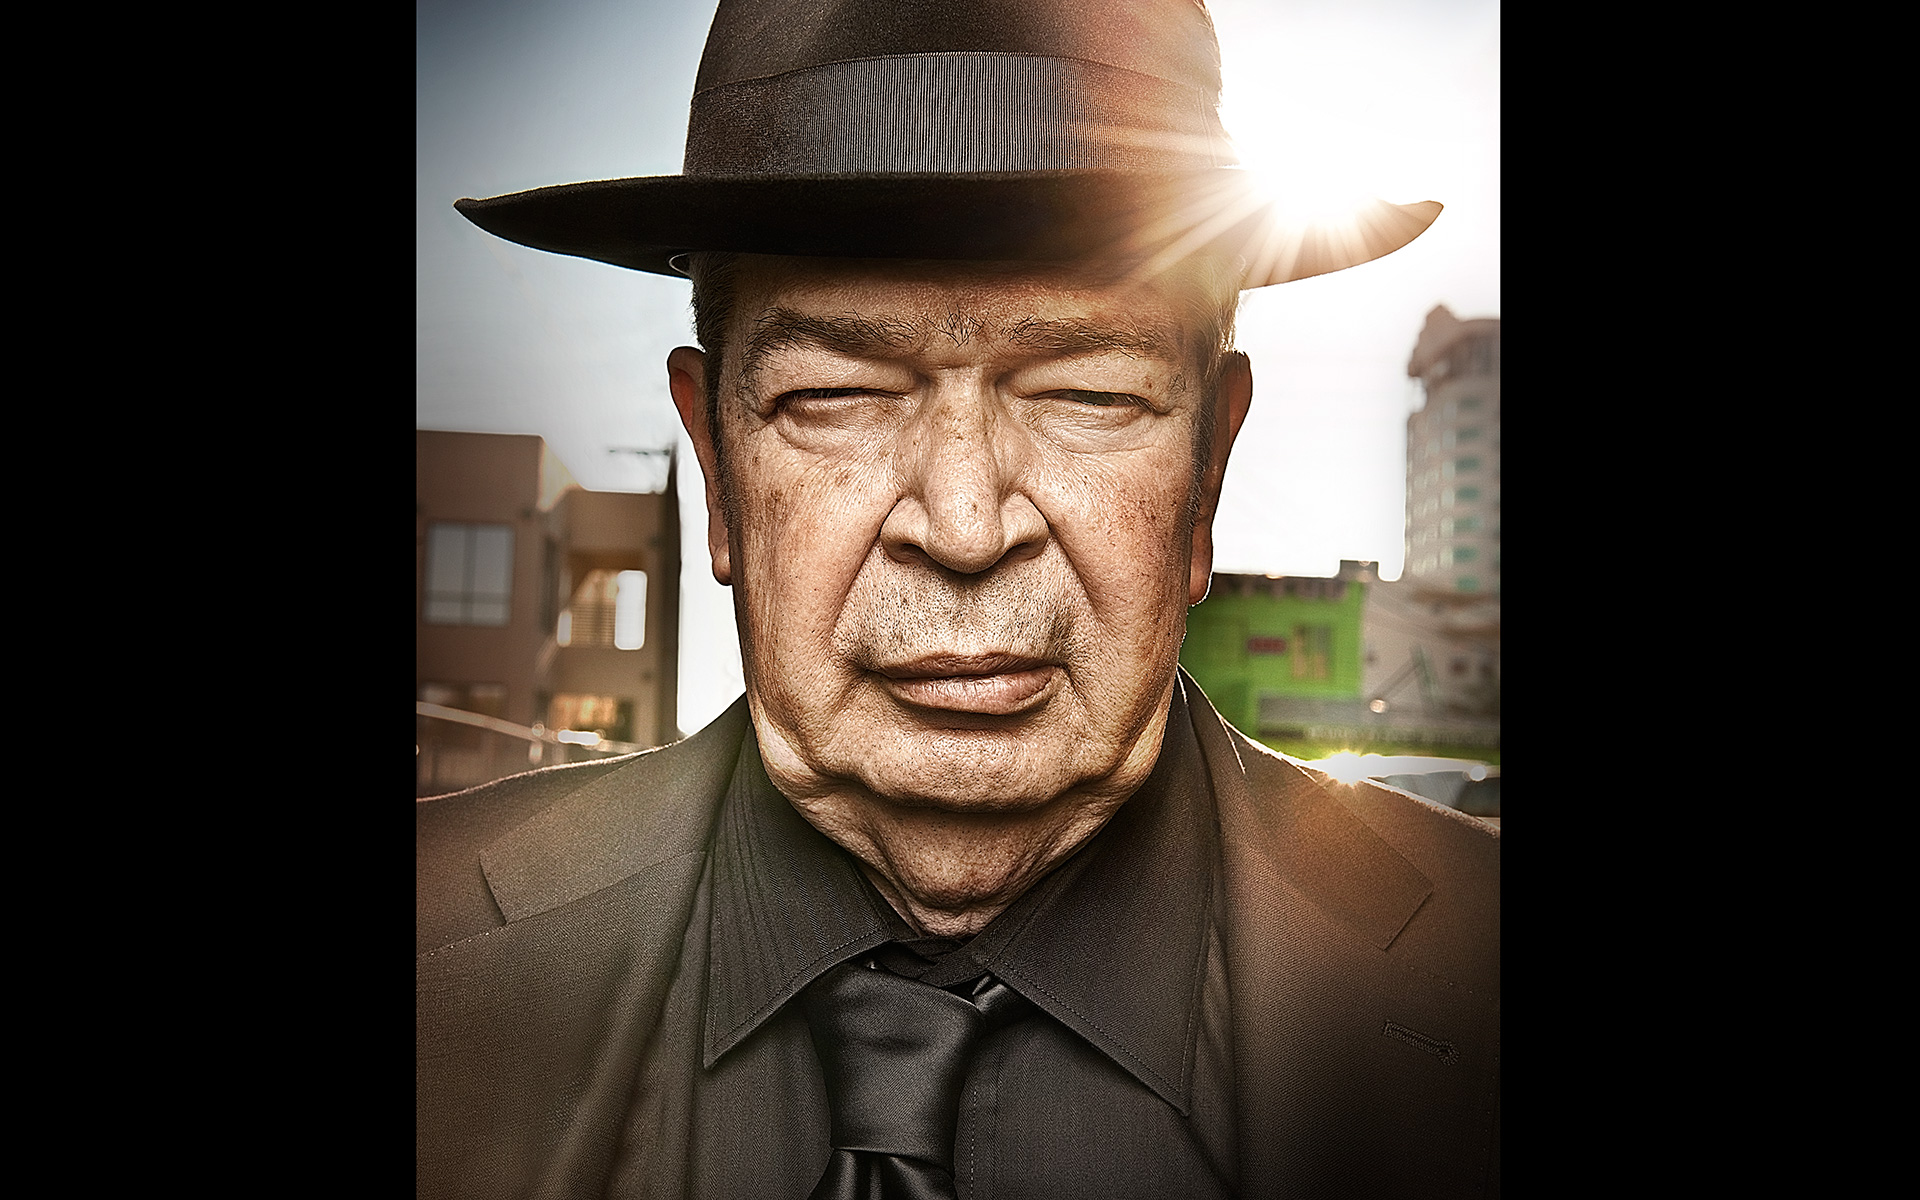 Pawn Stars USA The History Channel ©B Bunting